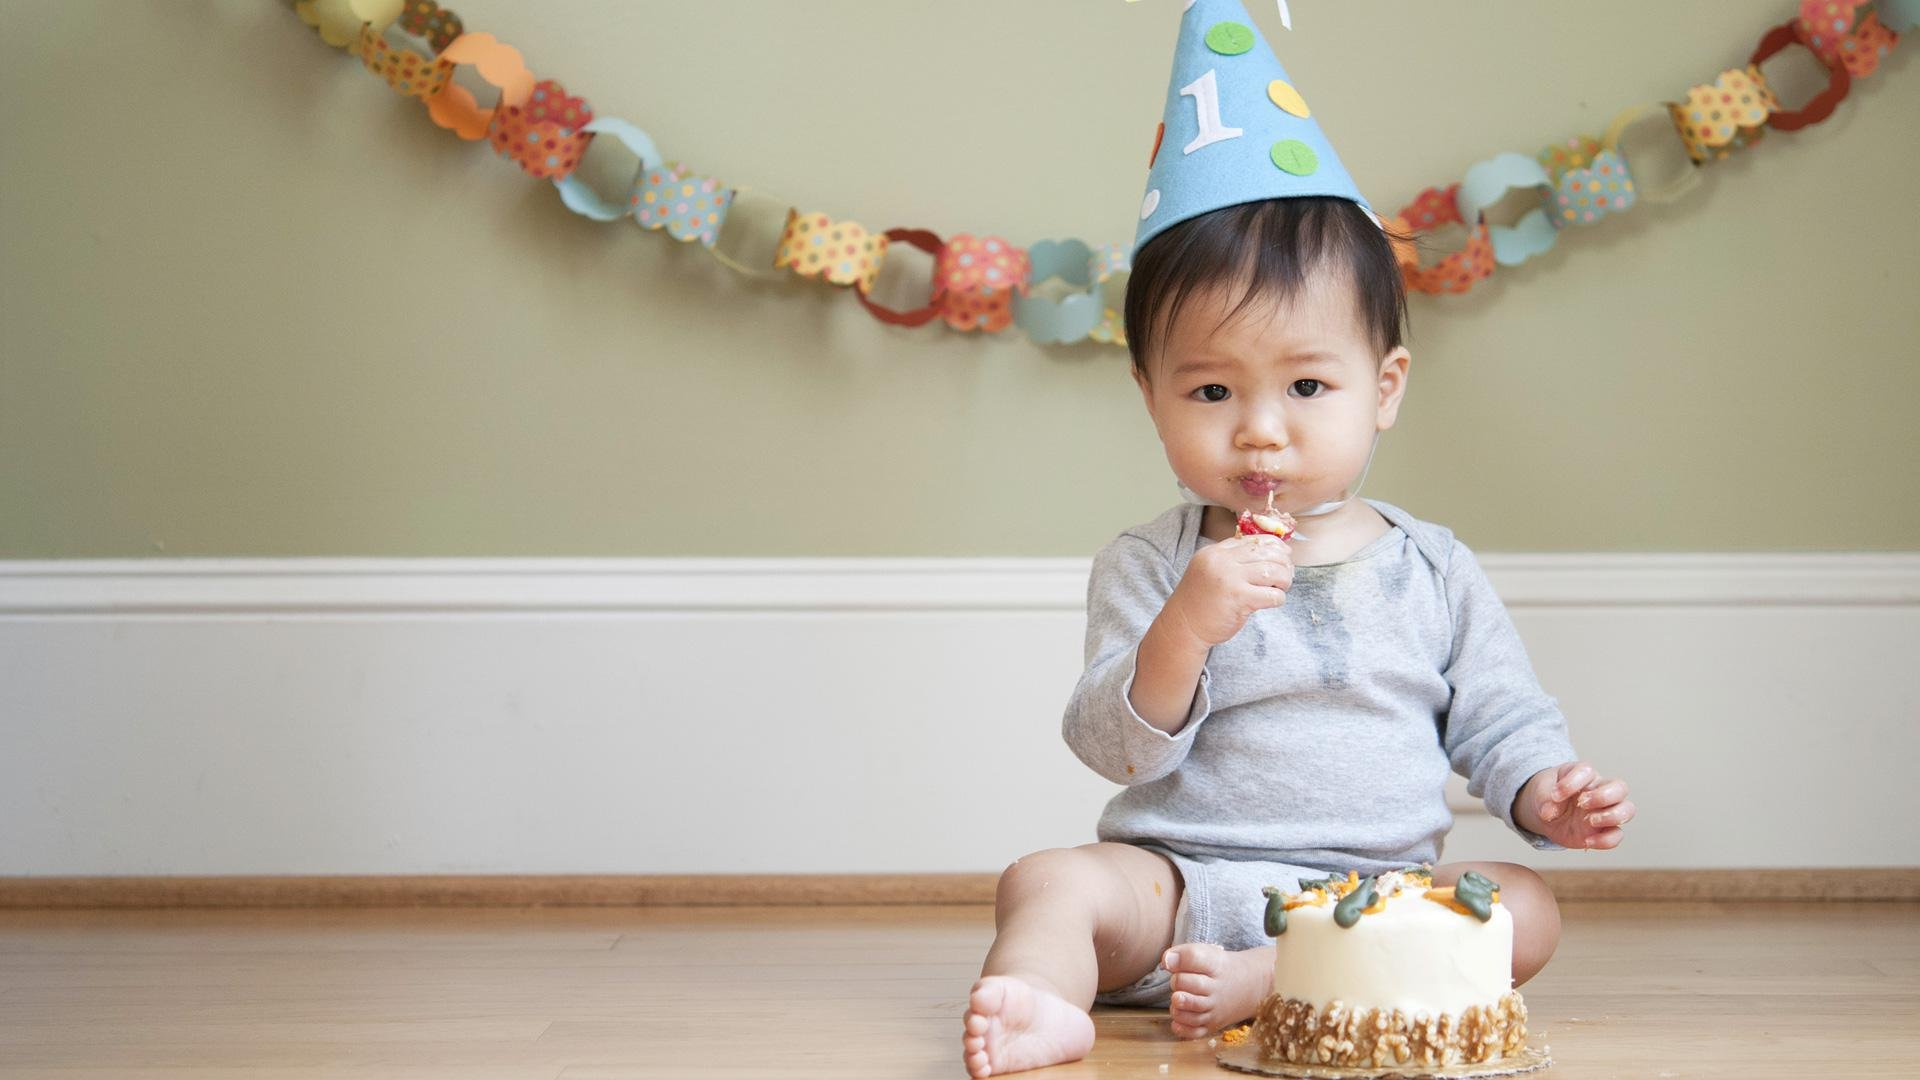 Real moms share What did you do for babys first birthday